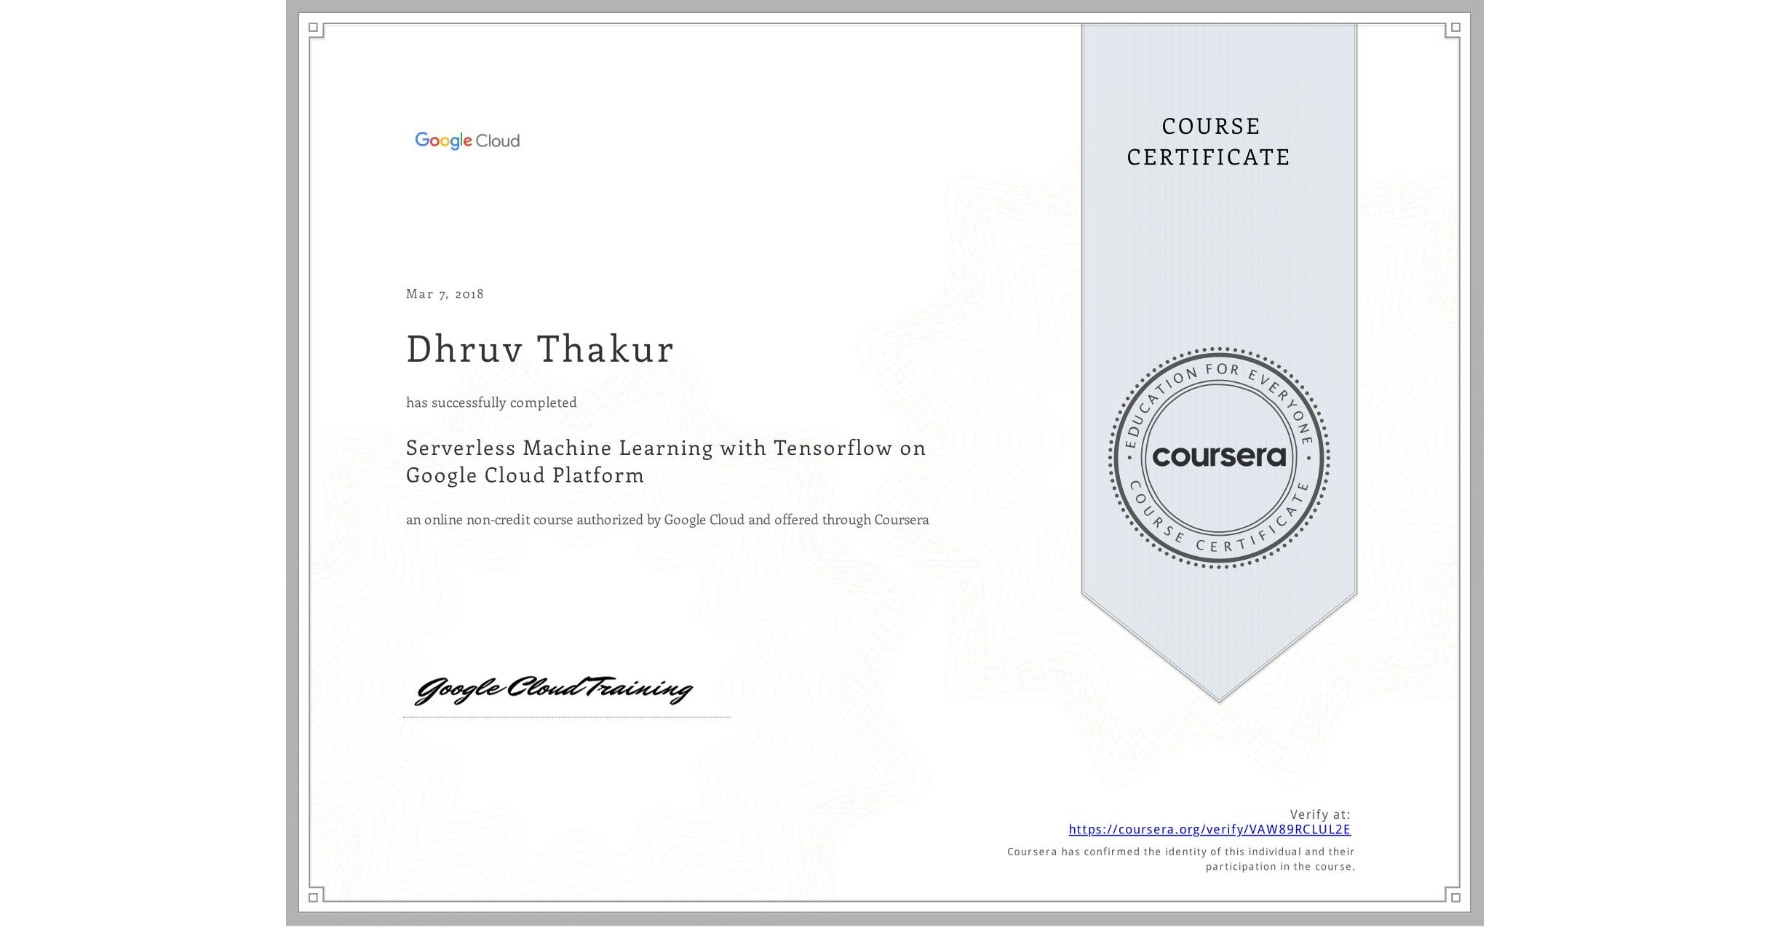 View certificate for Dhruv Thakur, Serverless Machine Learning with Tensorflow on Google Cloud Platform, an online non-credit course authorized by Google Cloud and offered through Coursera